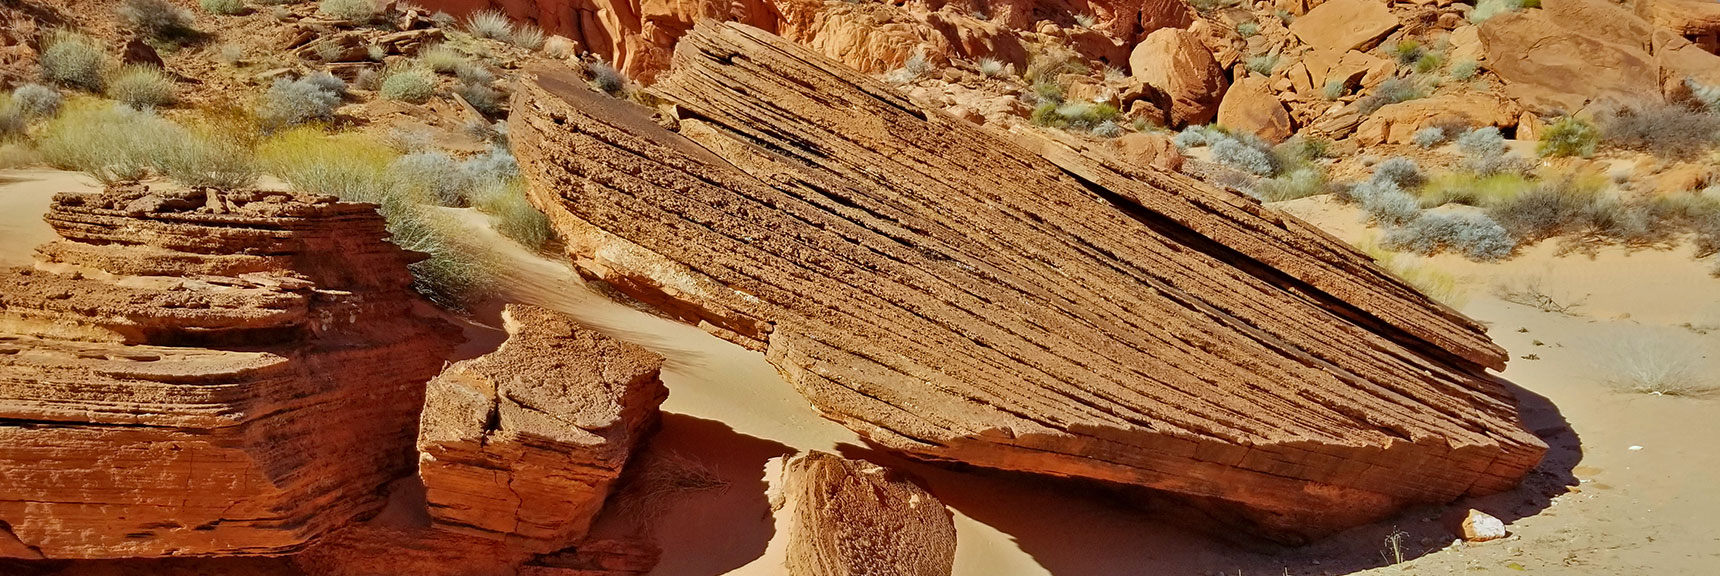 Rock Composed of Successive Silt Layers on Natural Arches Trail, Valley of Fire State Park, Nevada